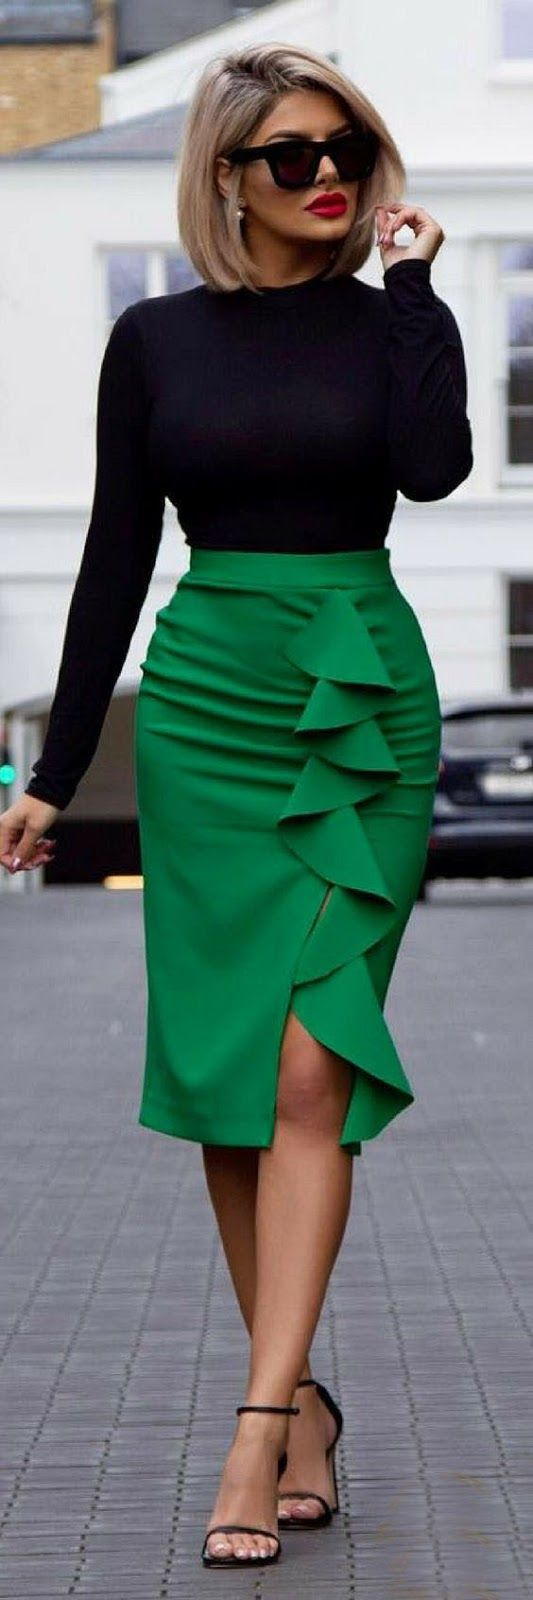 I love everything about this look. Just a pretty style | Latest fashion trends